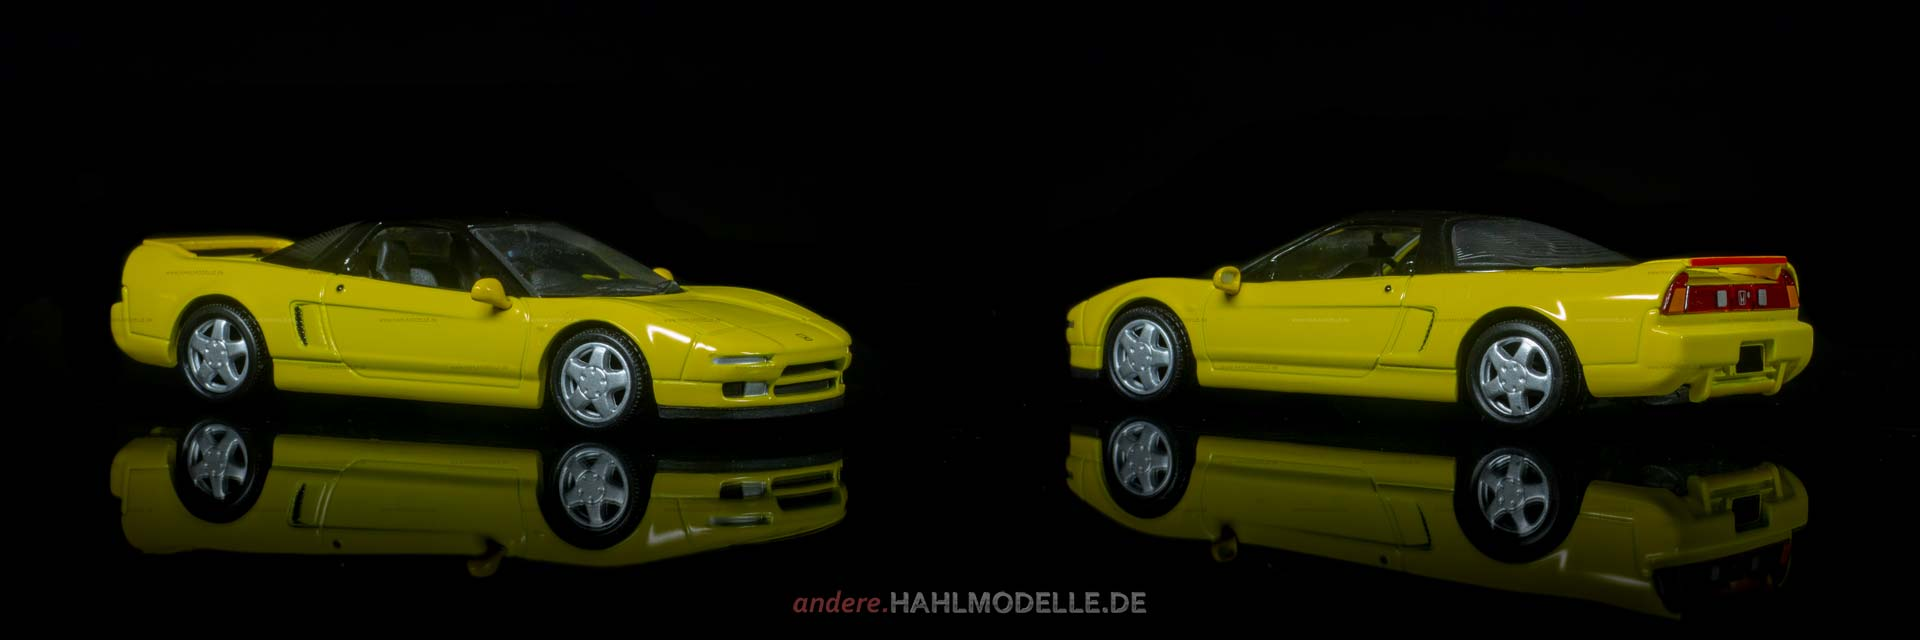 Honda NSX | Coupé | Ixo (Del Prado Car Collection) | 1:43 | www.andere.hahlmodelle.de